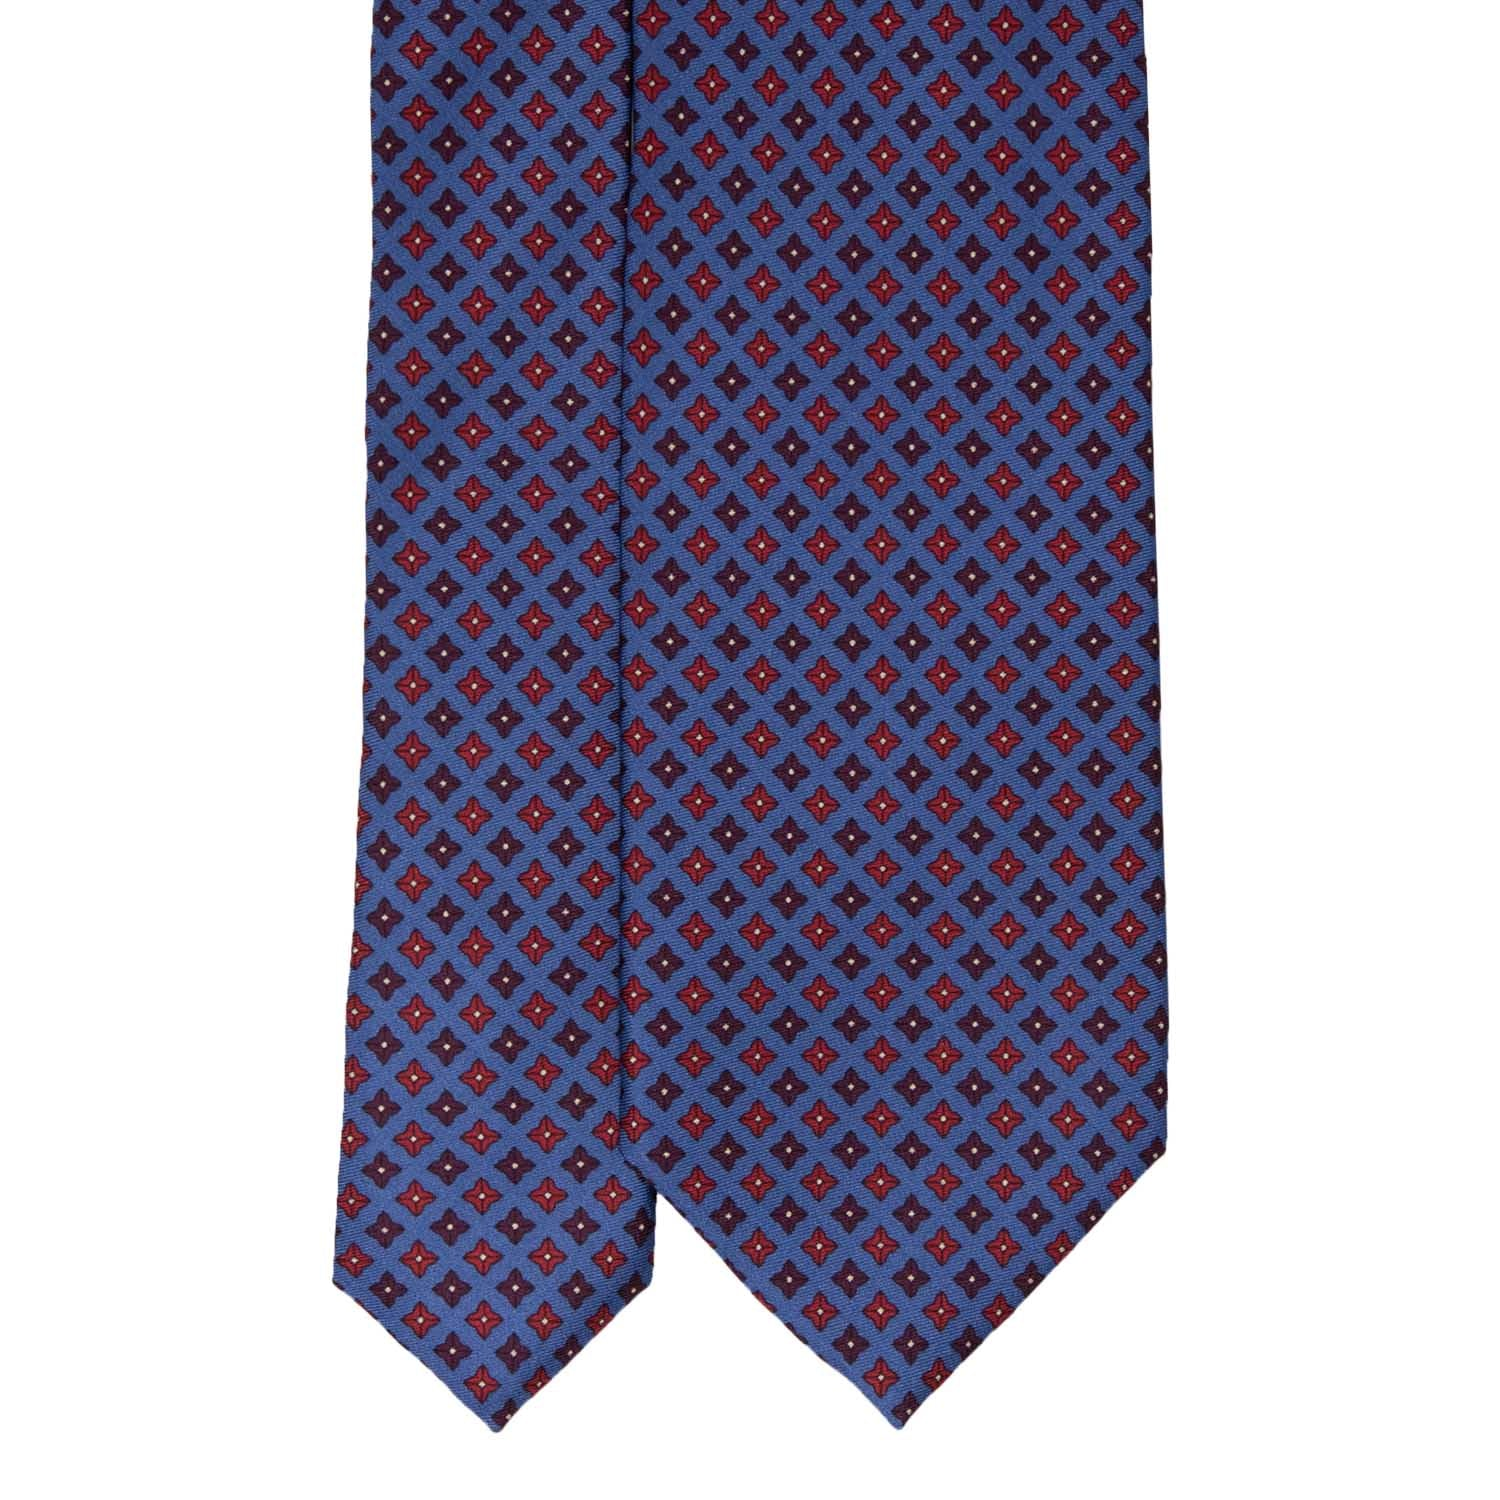 Dusty Blue with Red Square Dots Pattern Silk Tie